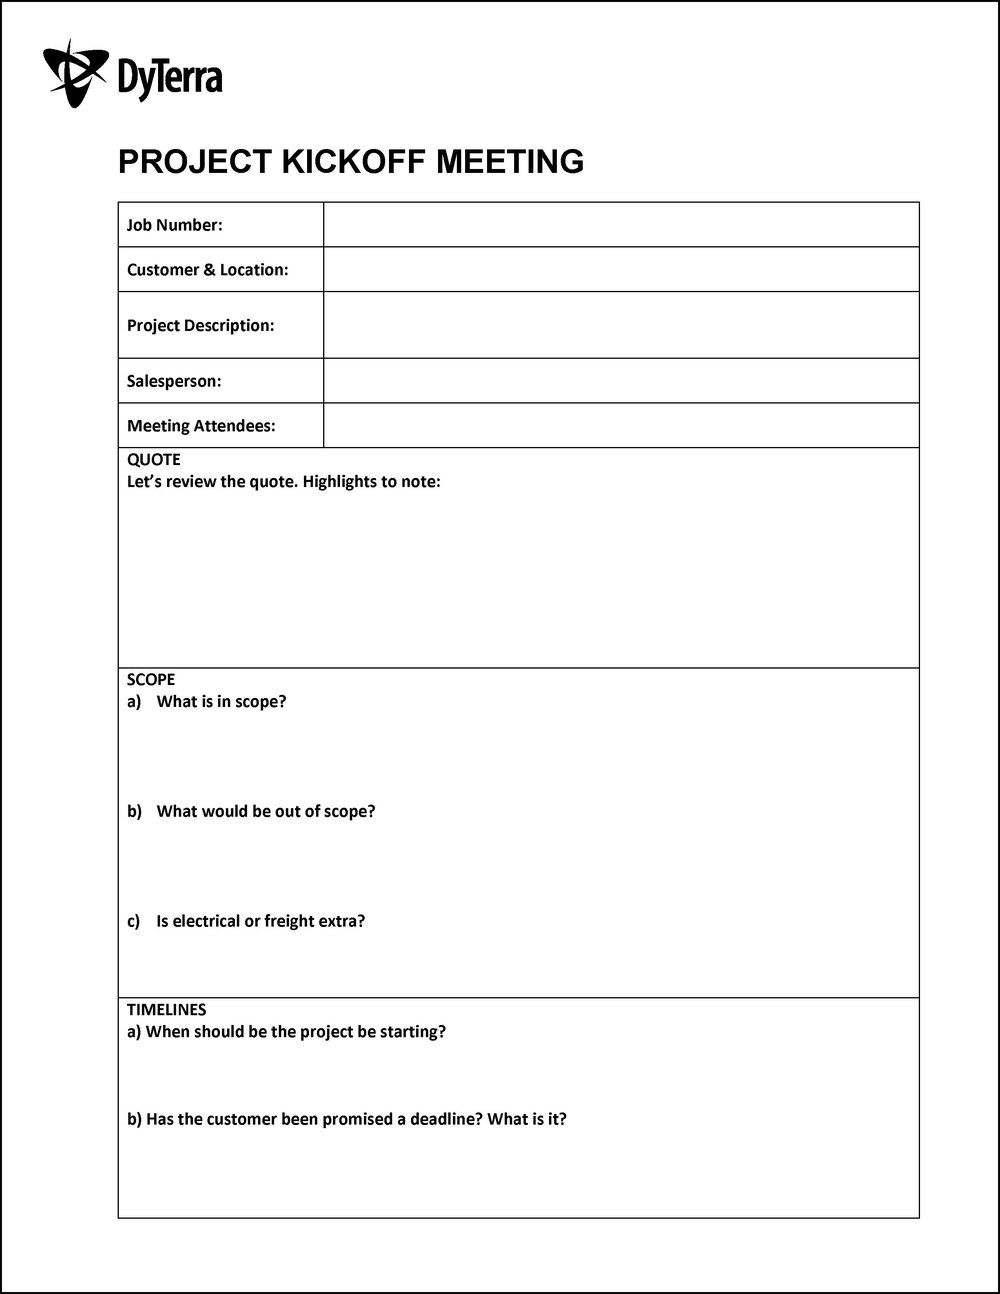 Project Kickoff Meeting Agenda.jpg